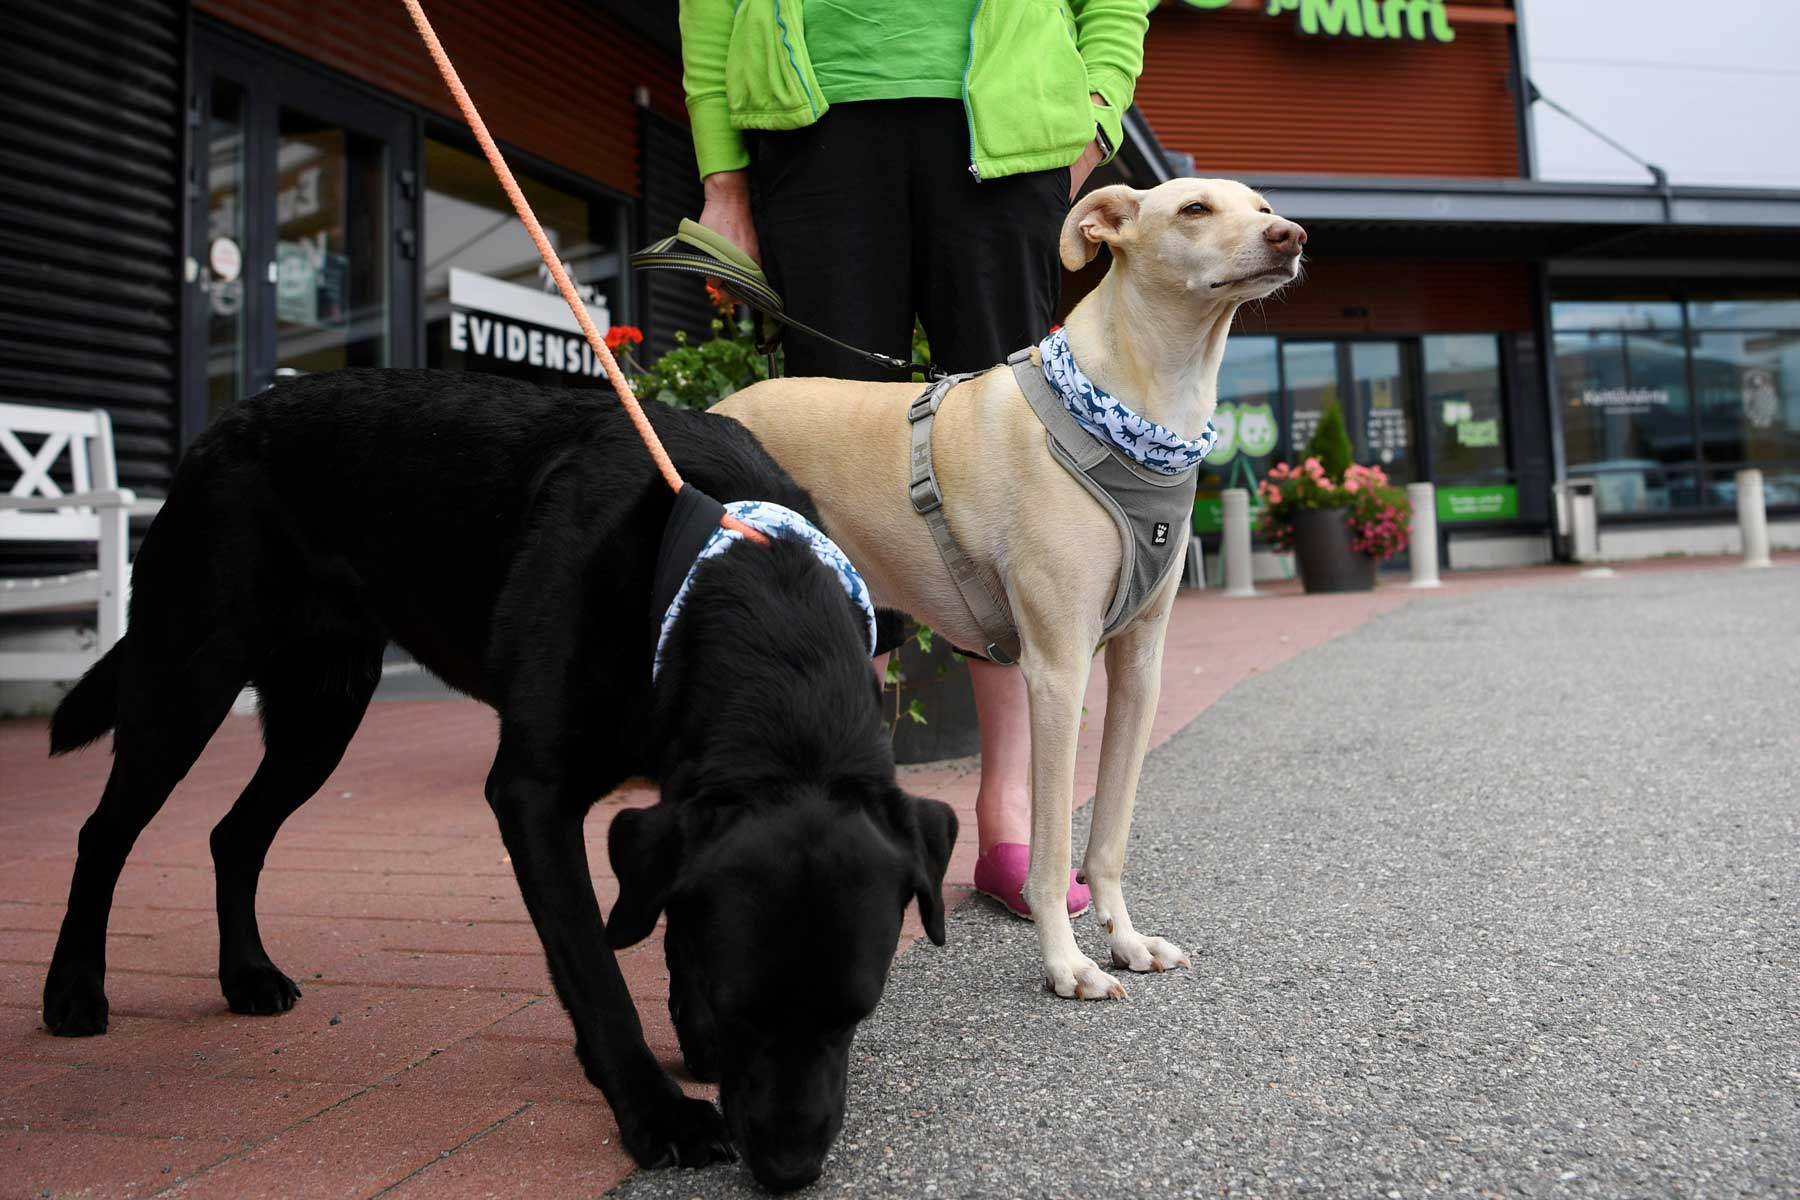 Corona virus sniffing dogs named Miina and Kössi (R) stand on the leash after being introduced at the Evidensia veterinary clinic in Vantaa, Finland on September 2, 2020.